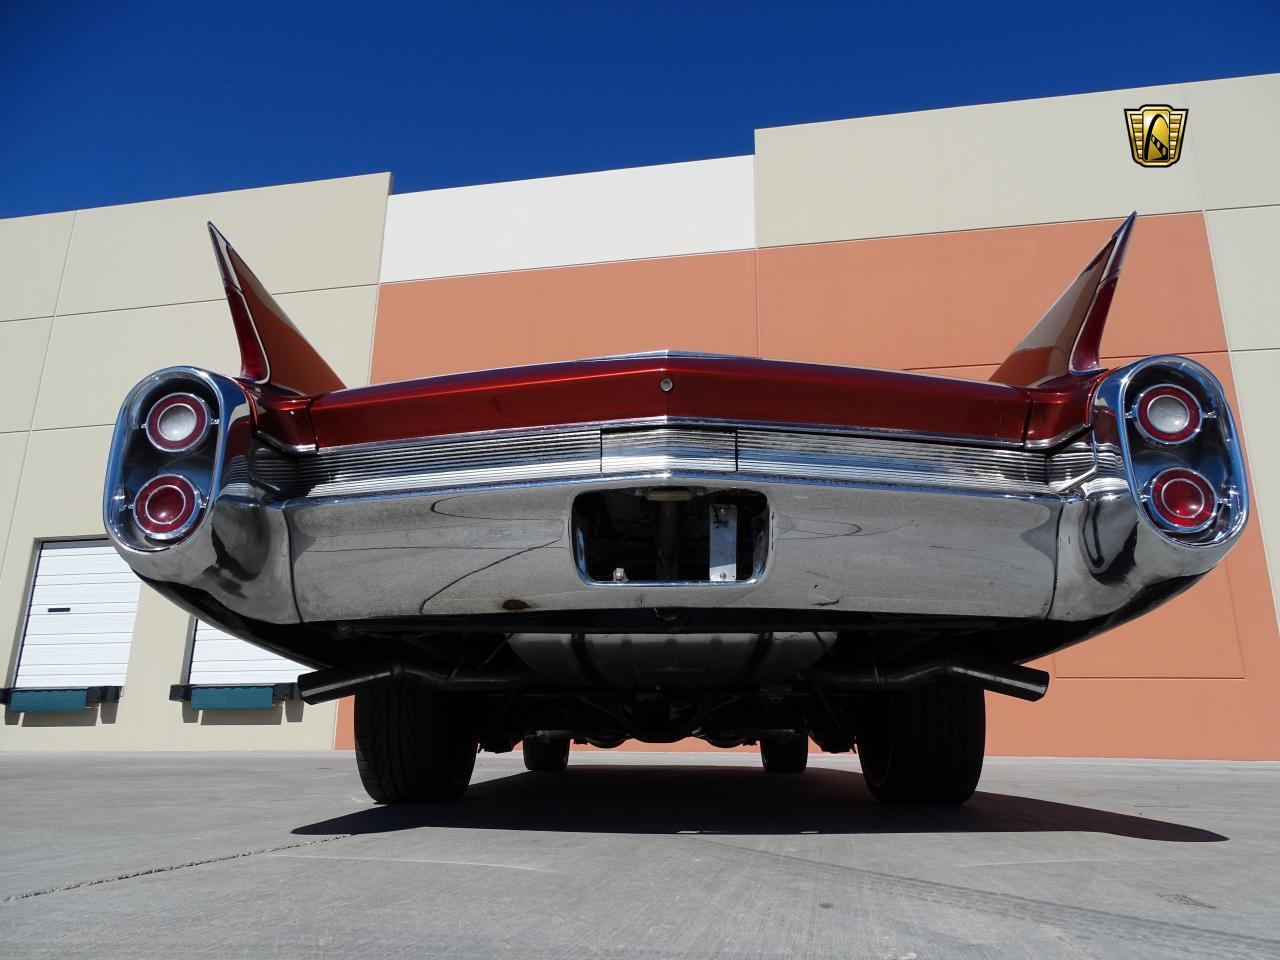 Large Picture of 1960 Series 62 located in Deer Valley Arizona - $51,000.00 Offered by Gateway Classic Cars - Scottsdale - MZFH